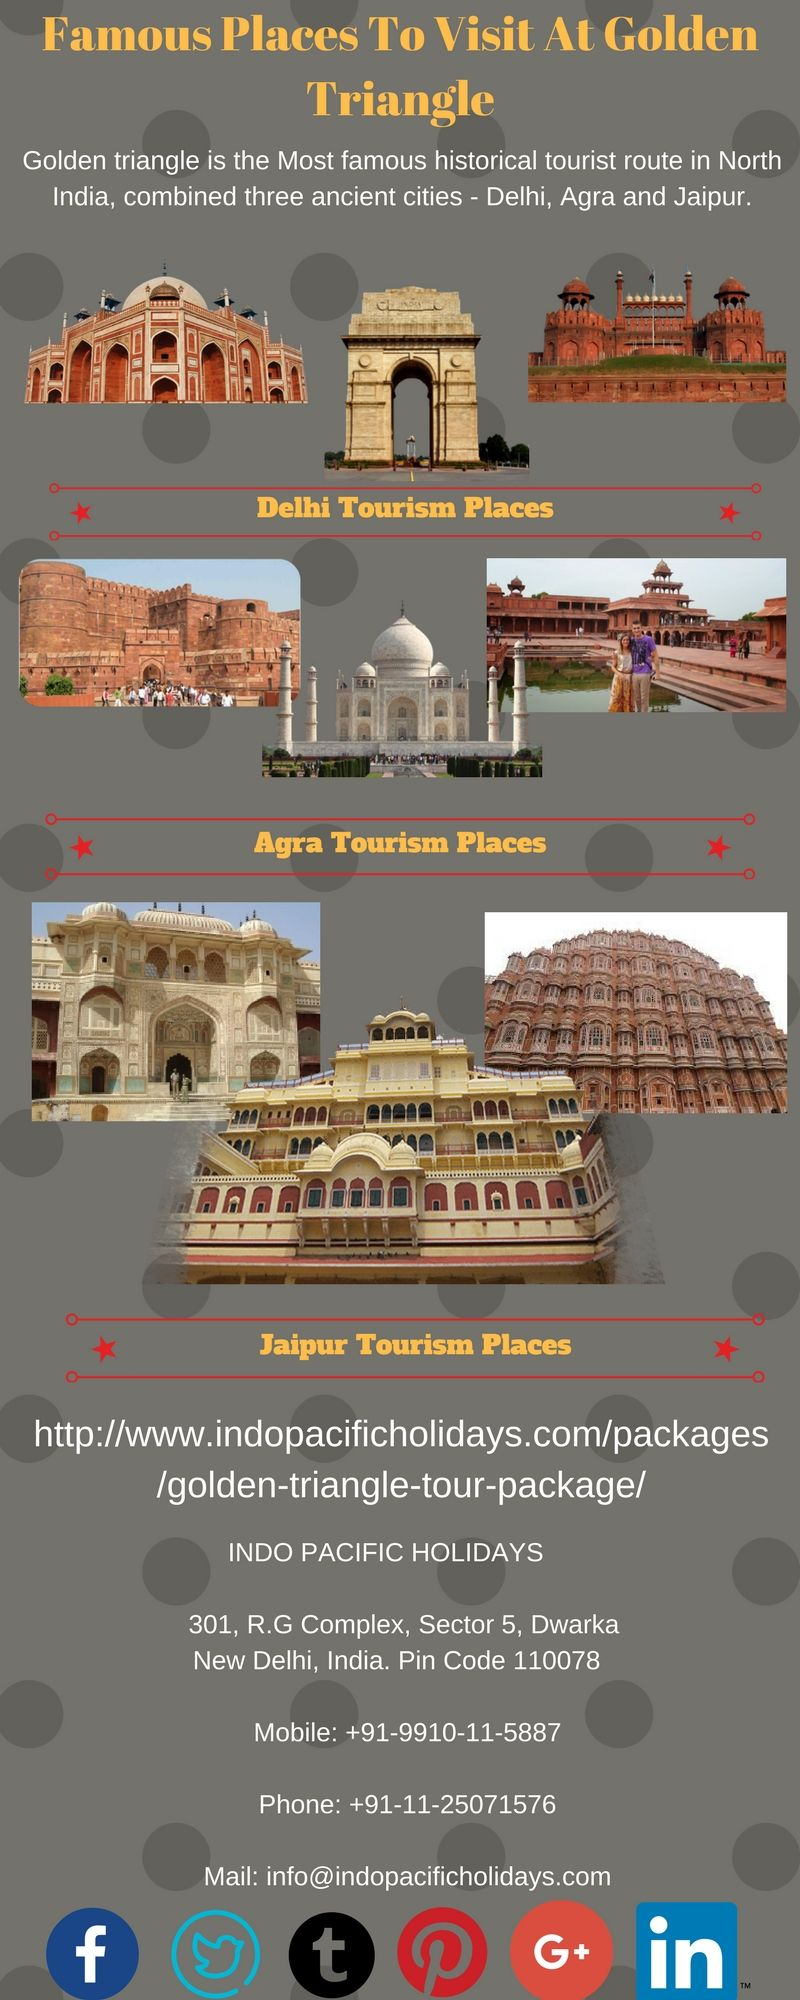 golden triangle tour packages india delhi agra and jaipur holiday